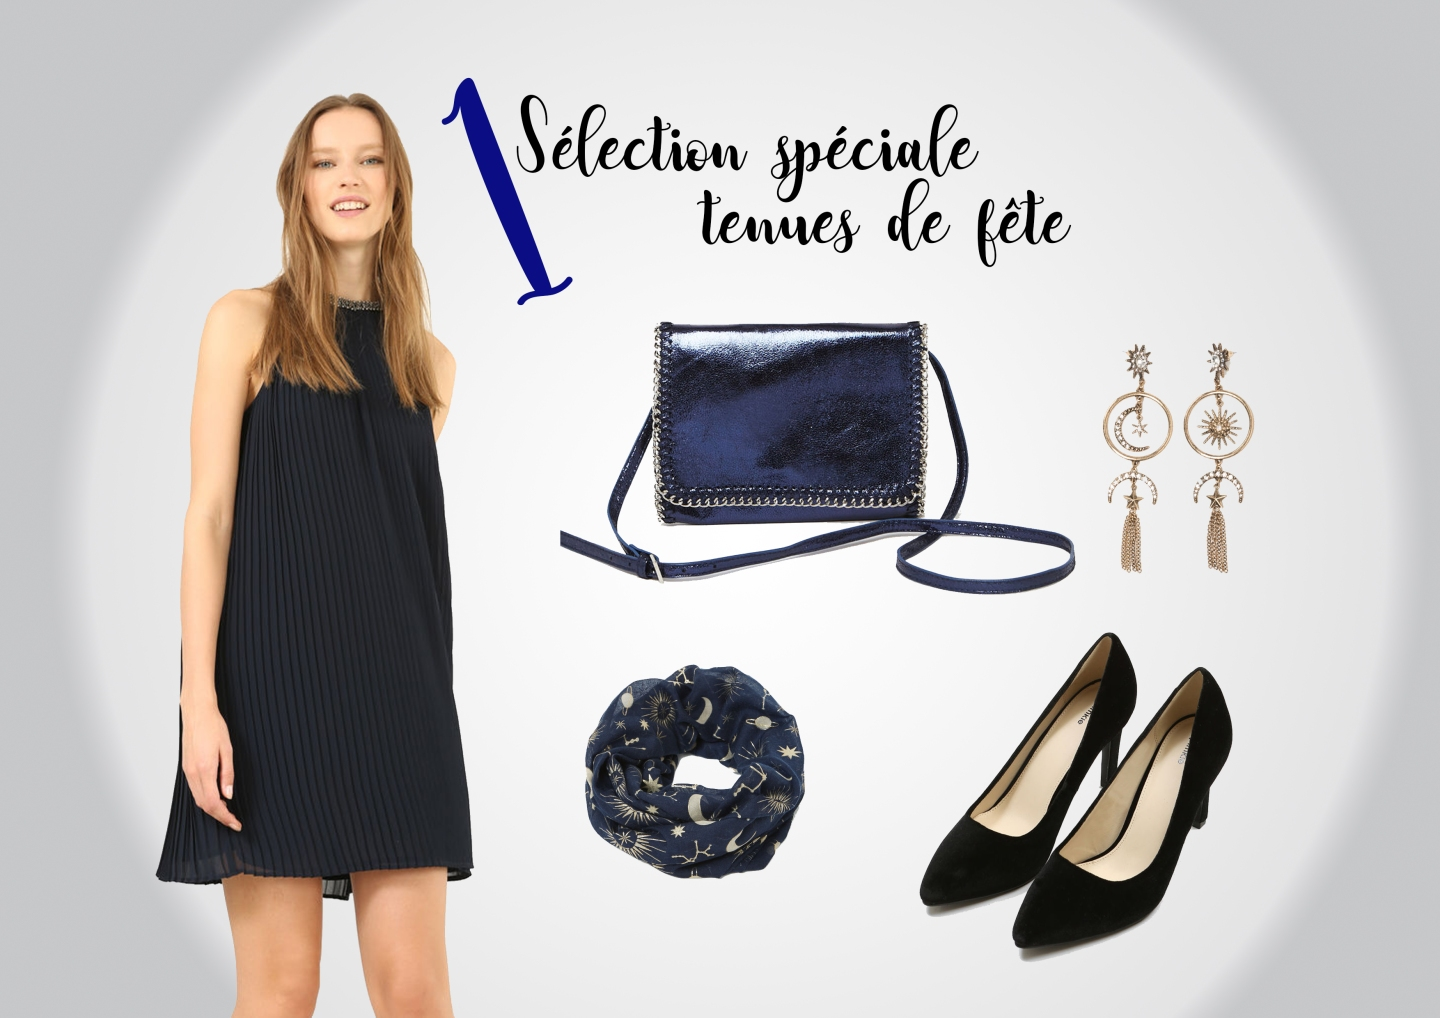 selection-speciale-fetes1